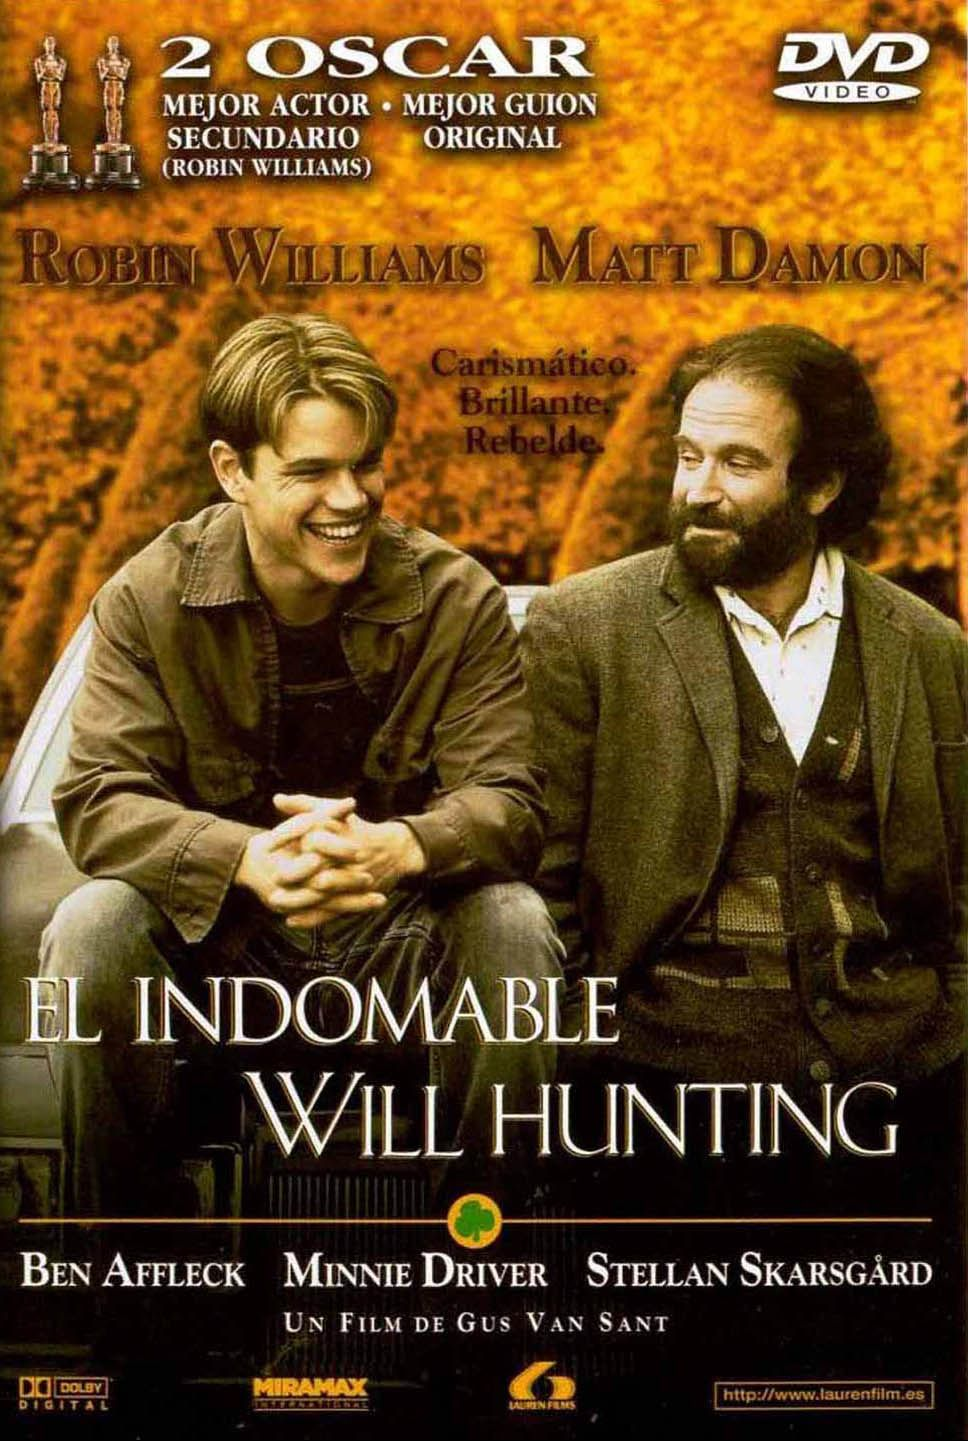 Pelicula El Indomable Will Hunting Mente Indomable El Indomable Will Hunting Indomable Pelicula